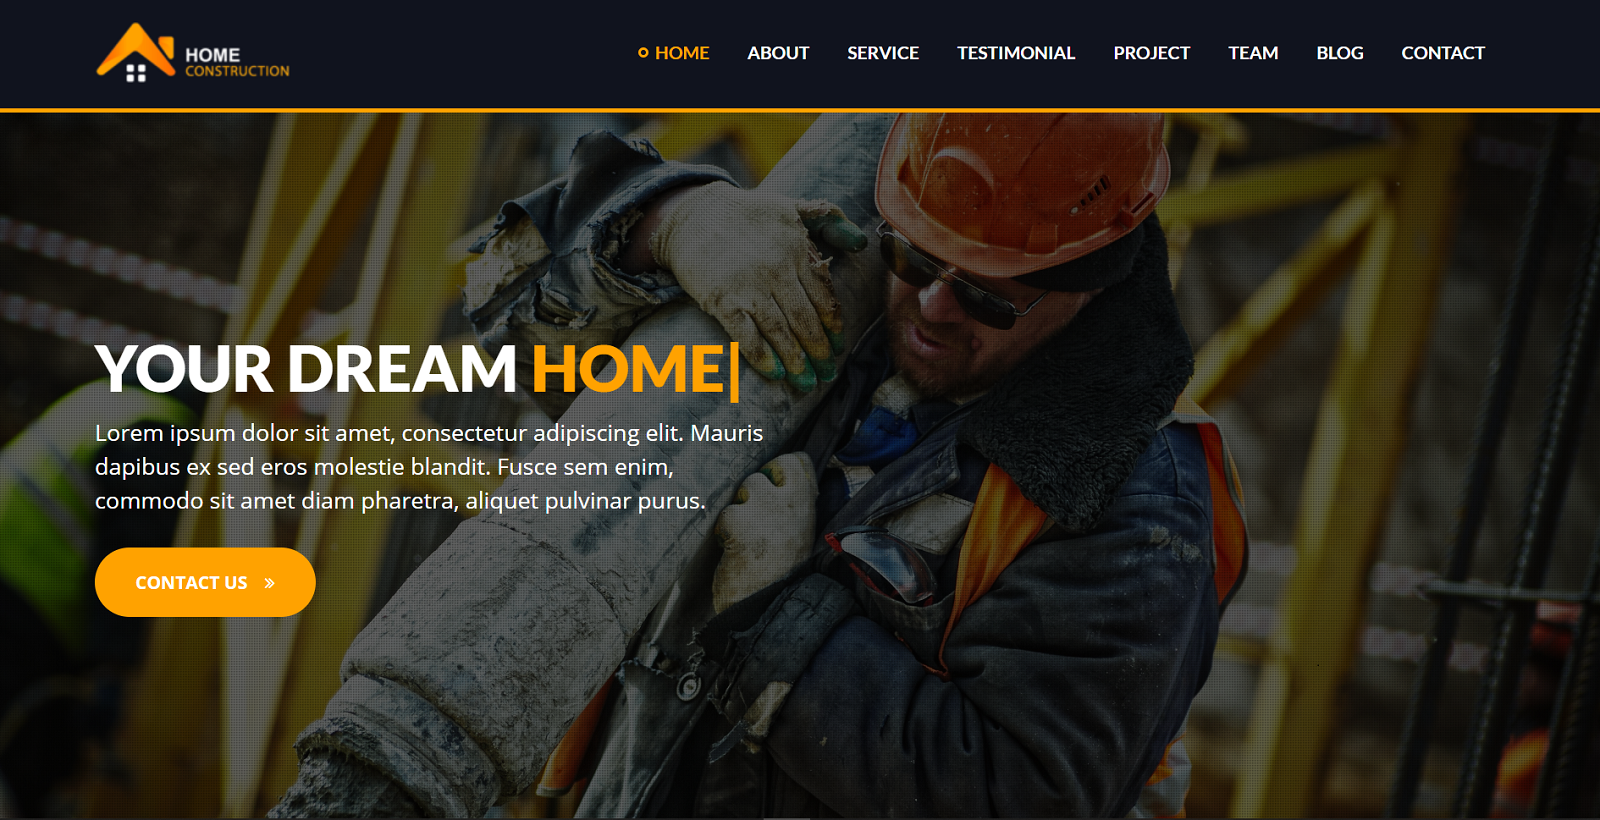 HomeConstruction - Builder Landing Page Template